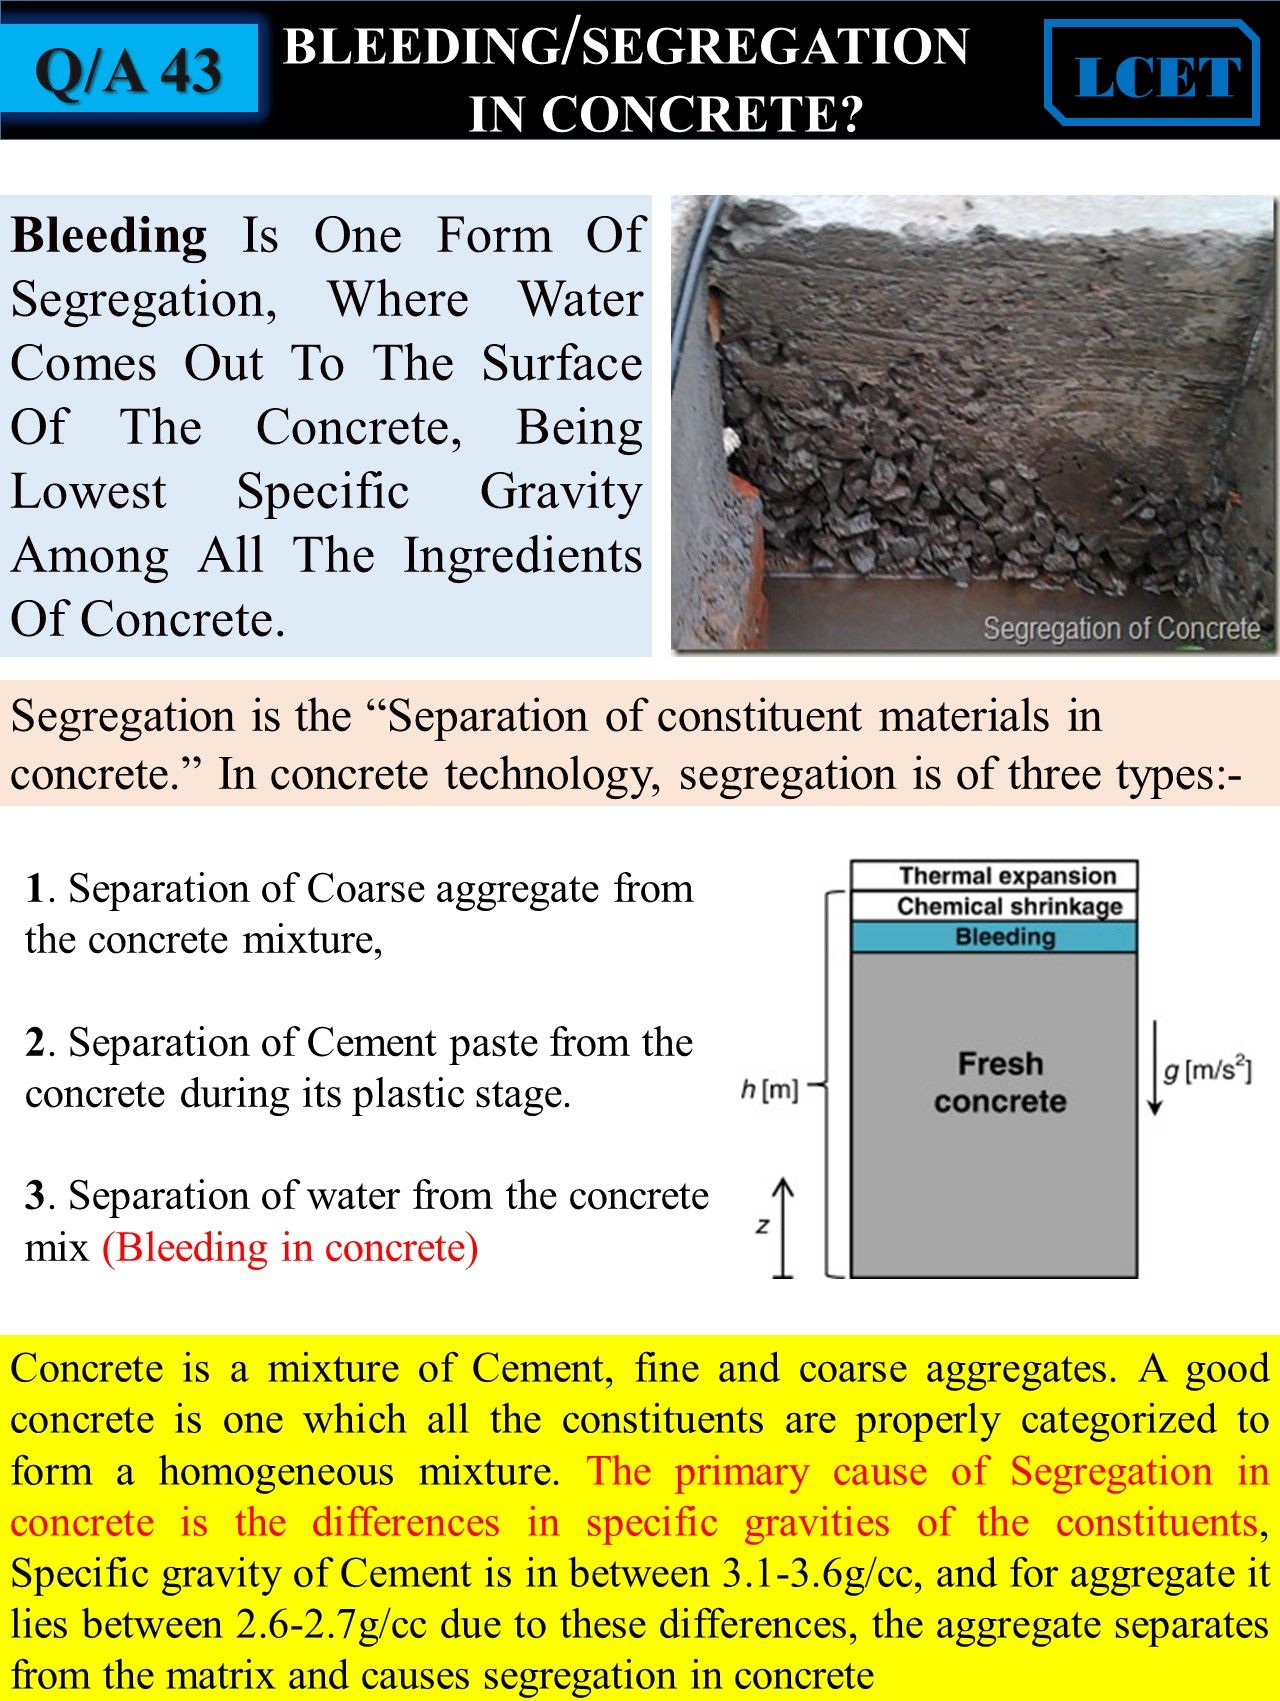 Q A 43 Bleeding Segregation In Concrete Bleeding In Concrete Is A Phenomenon In Which Free Water In 2020 Civil Engineering Structural Engineering Concrete Mix Design